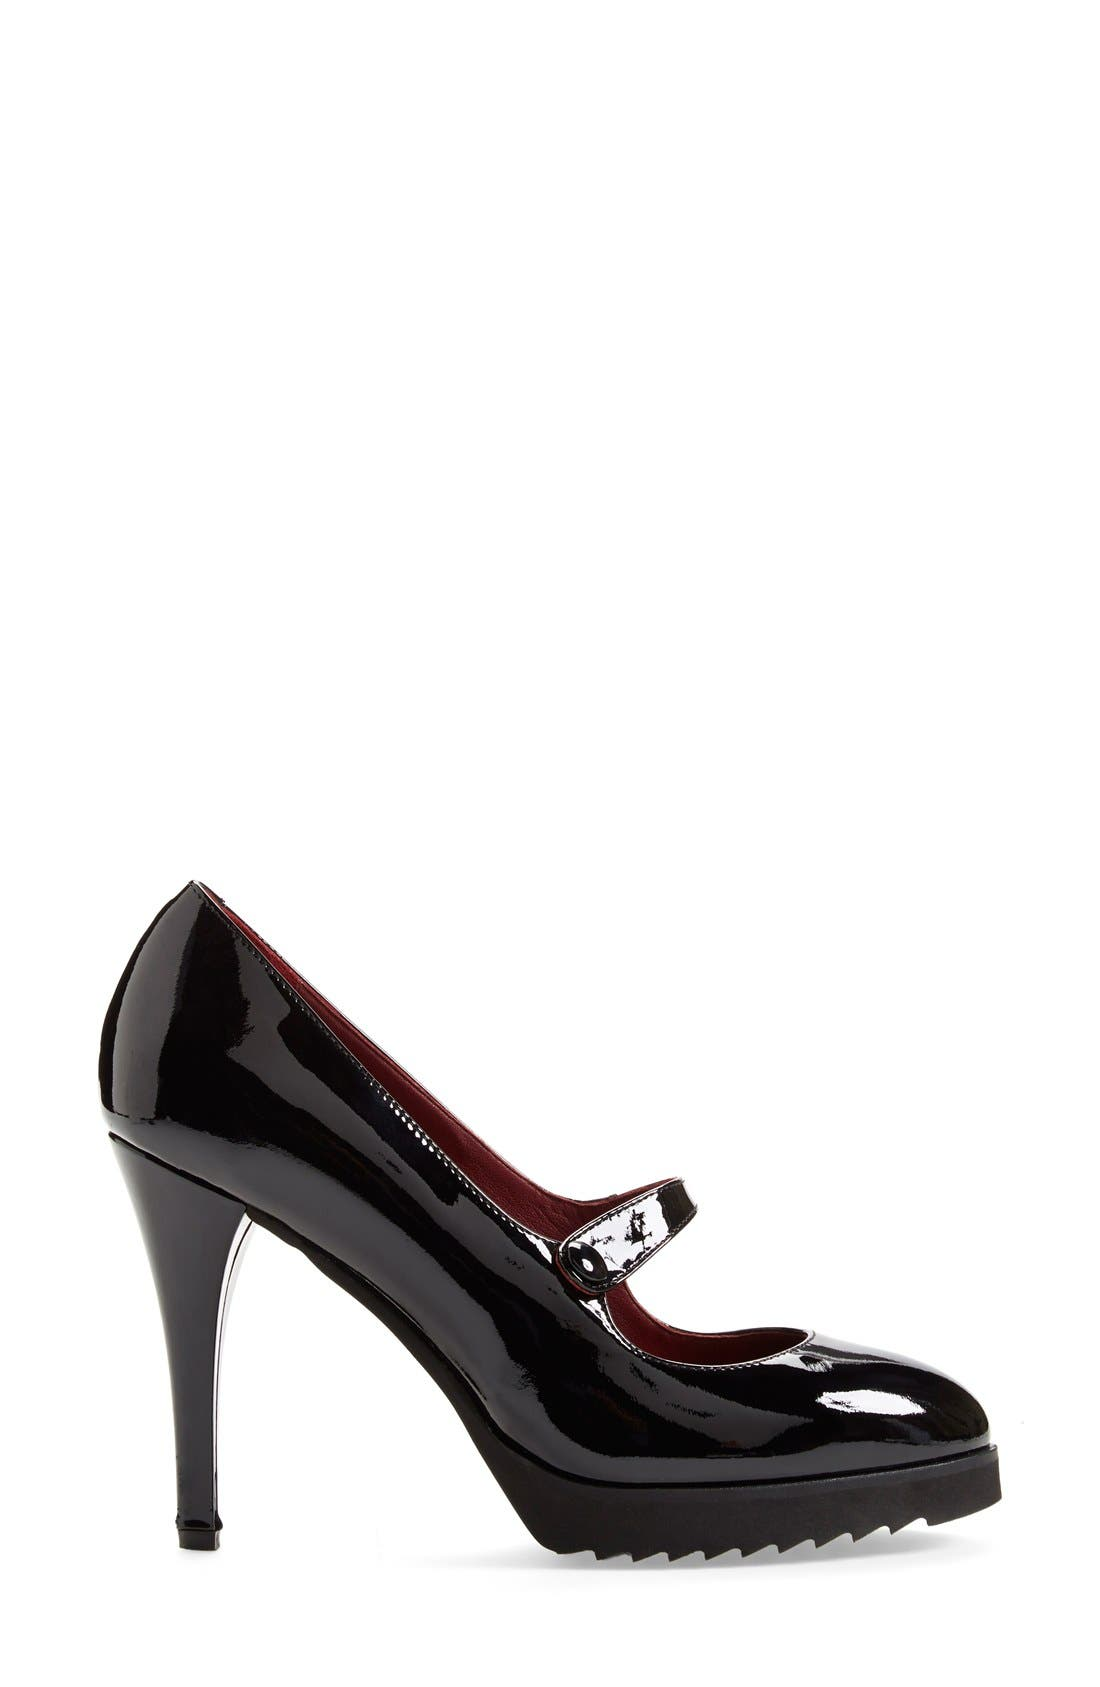 Alternate Image 4  - Anyi Lu 'Camille' Mary Jane Pump (Women)